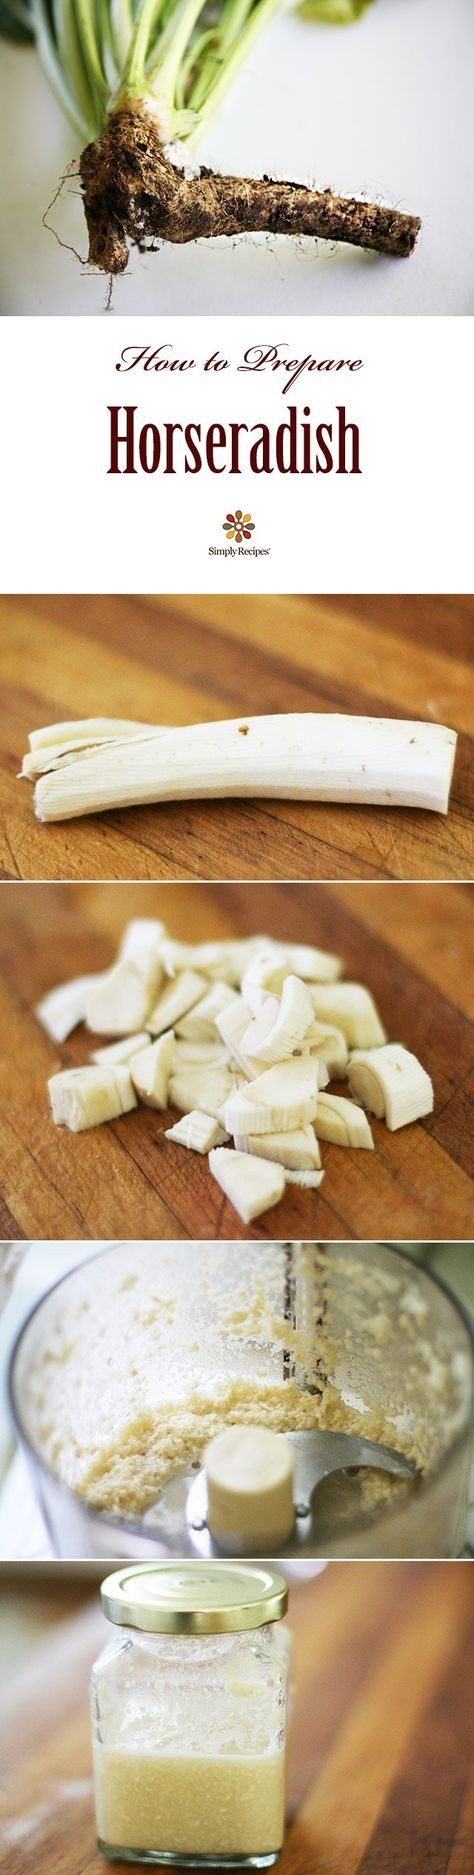 How to make homemade horseradish by grating horseradish root and adding vinegar. #DIY On SimplyRecipes.com